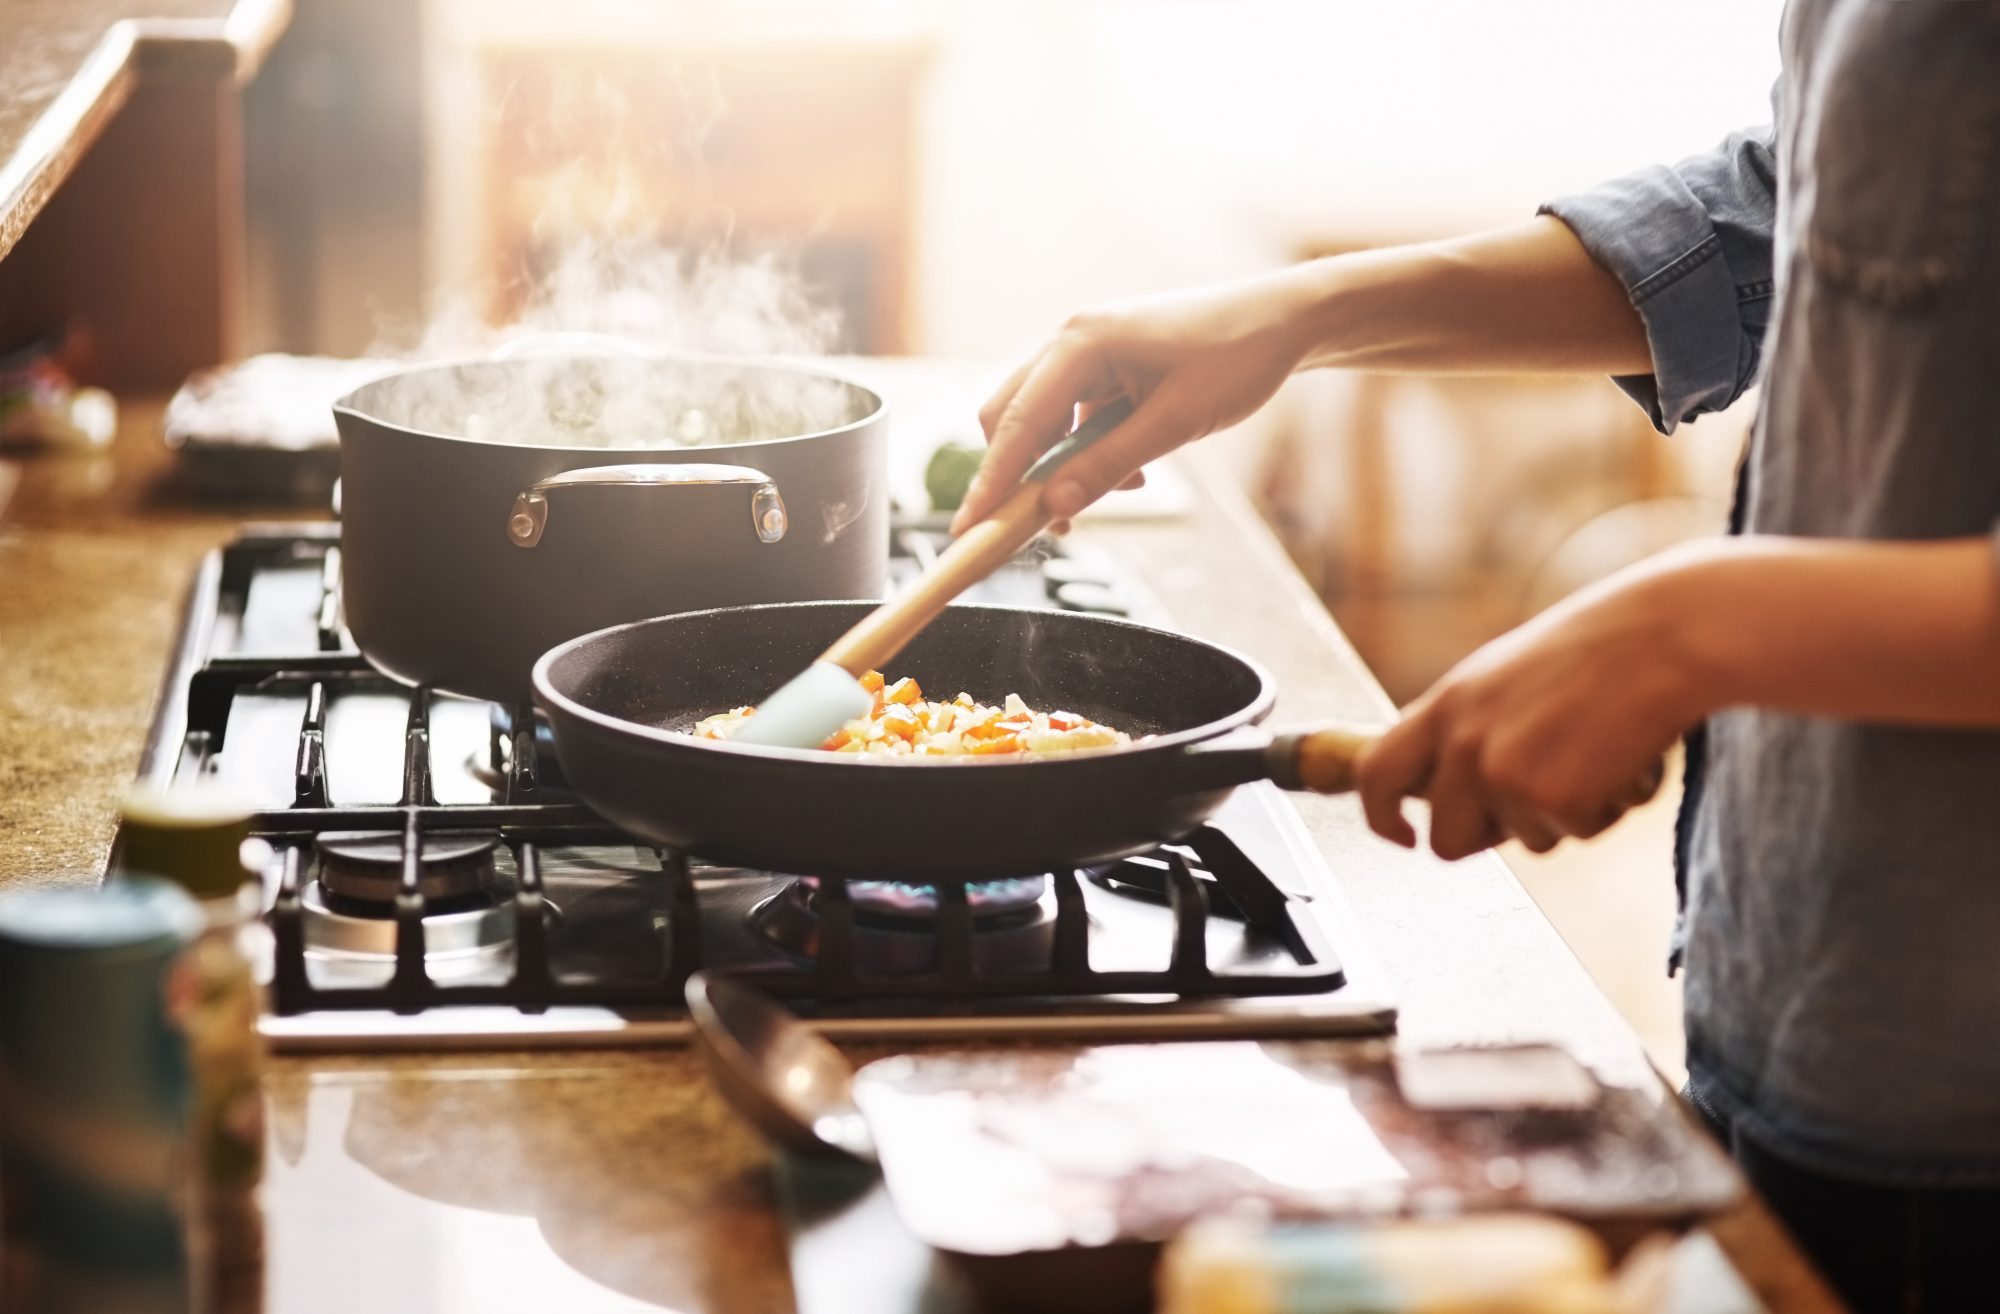 11 Tips from Culinary School That Changed the Way I Cook